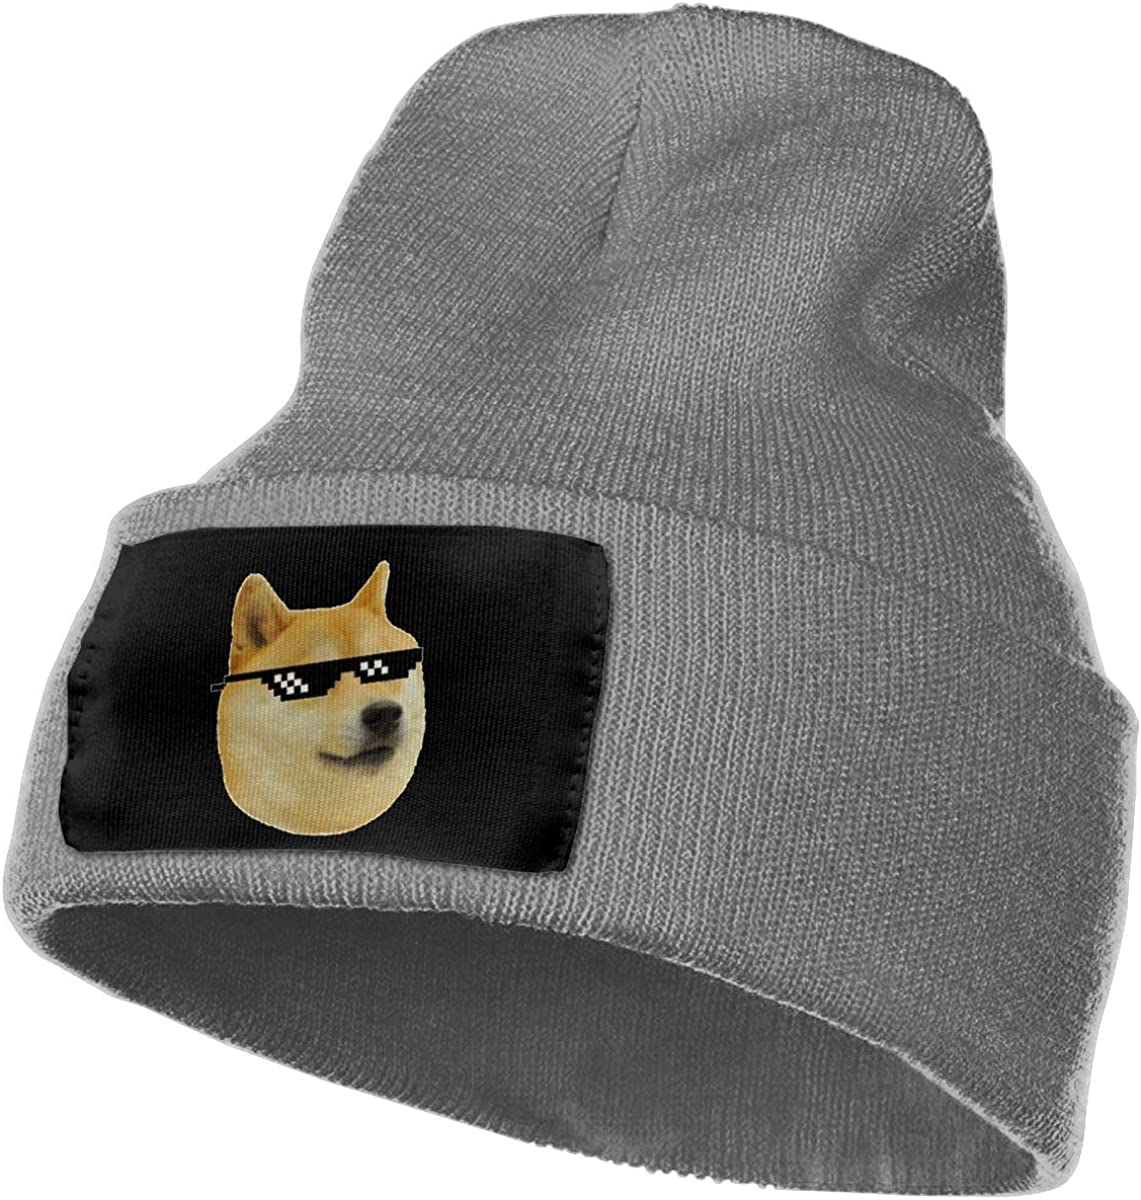 Unisex Winter Hats Shiba Inu Faces Skull Caps Knit Hat Cap Beanie Cap for Men//Womens